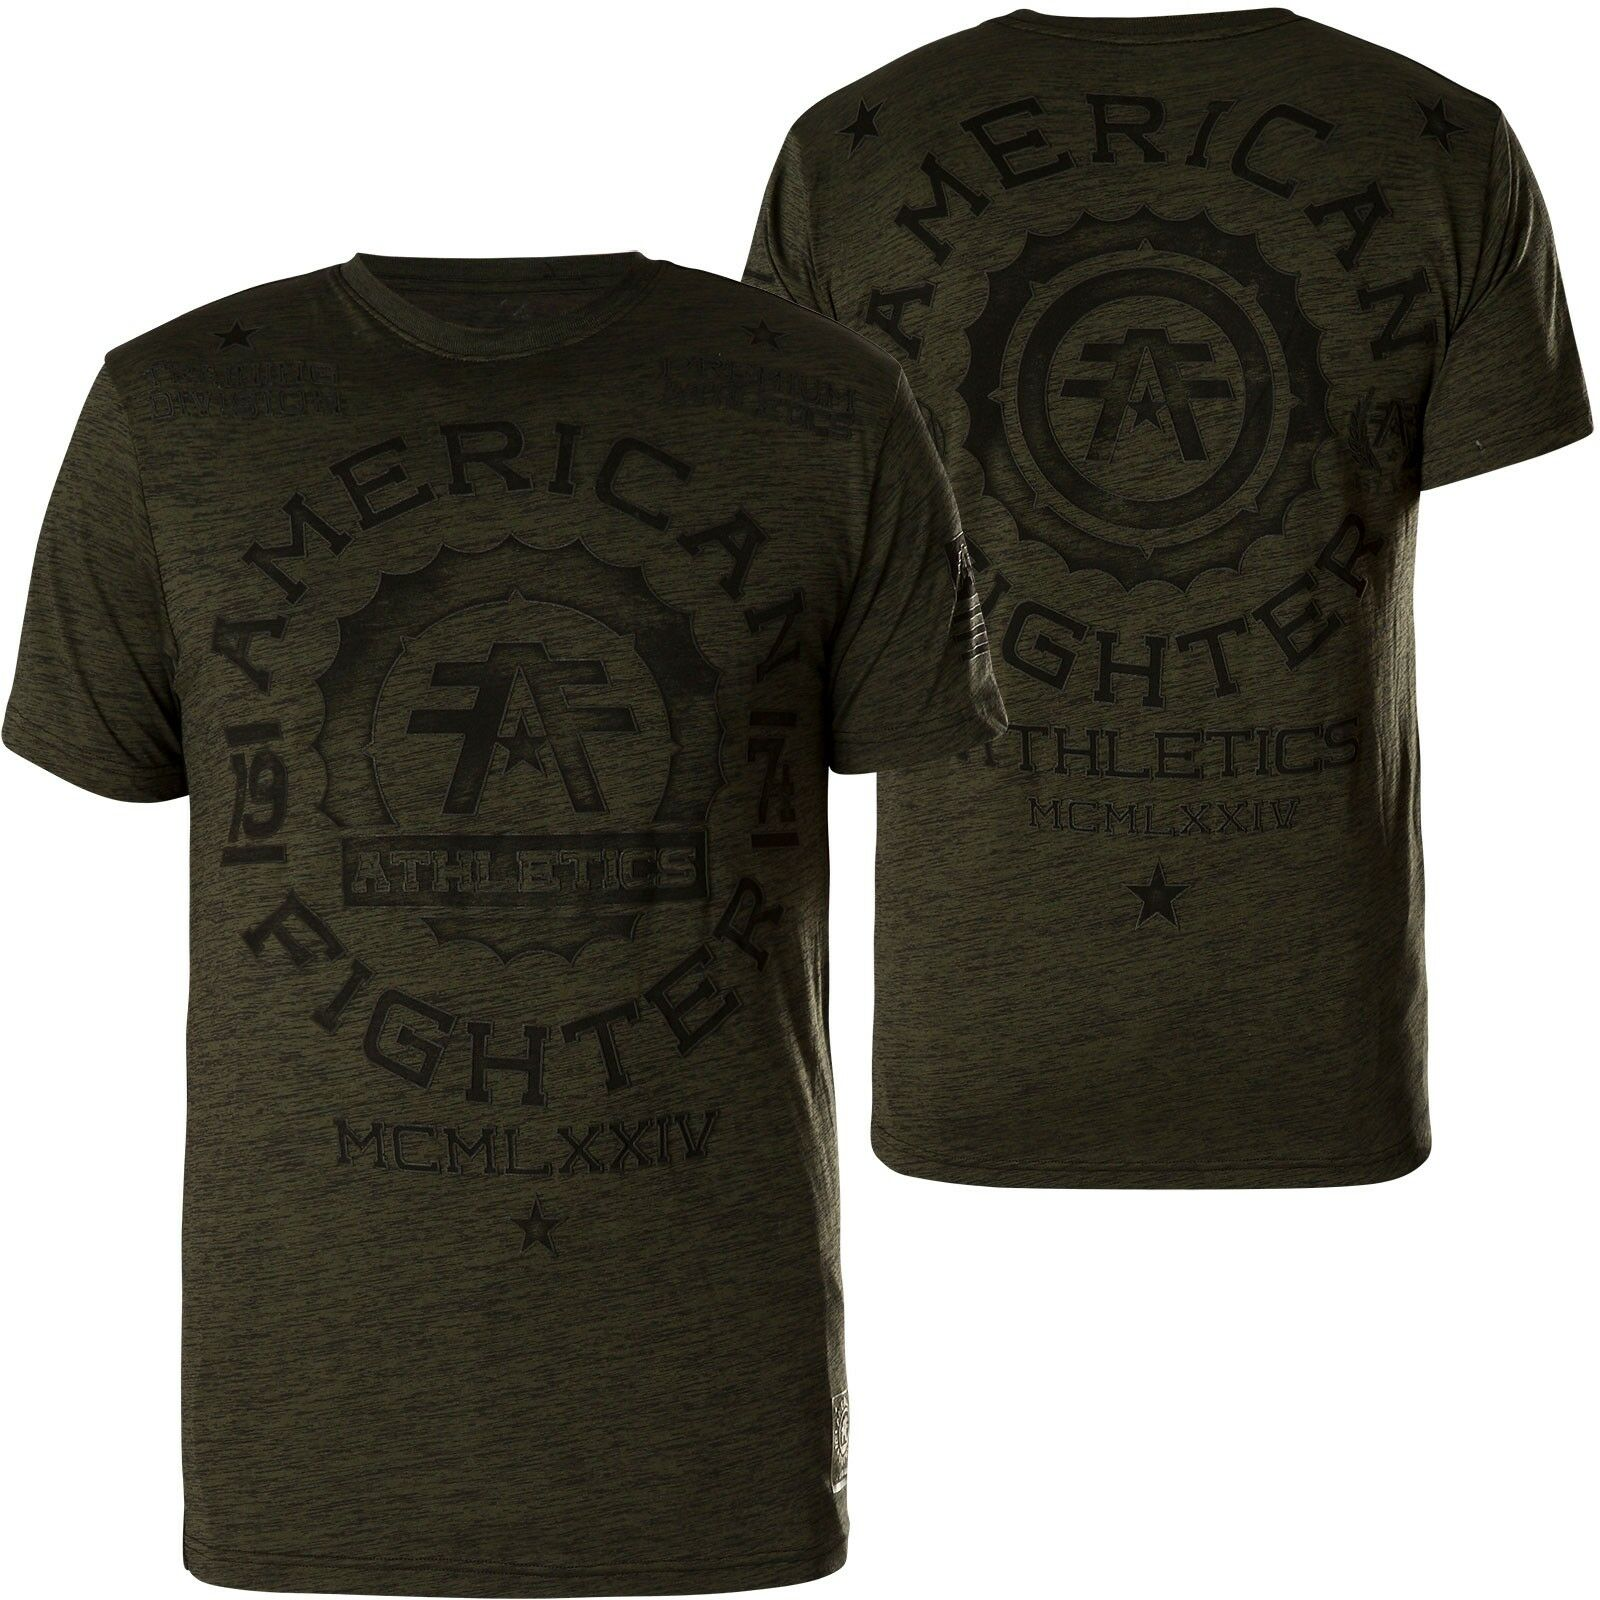 American Fighter Affliction T-shirt Maryland Oliva T-shirts